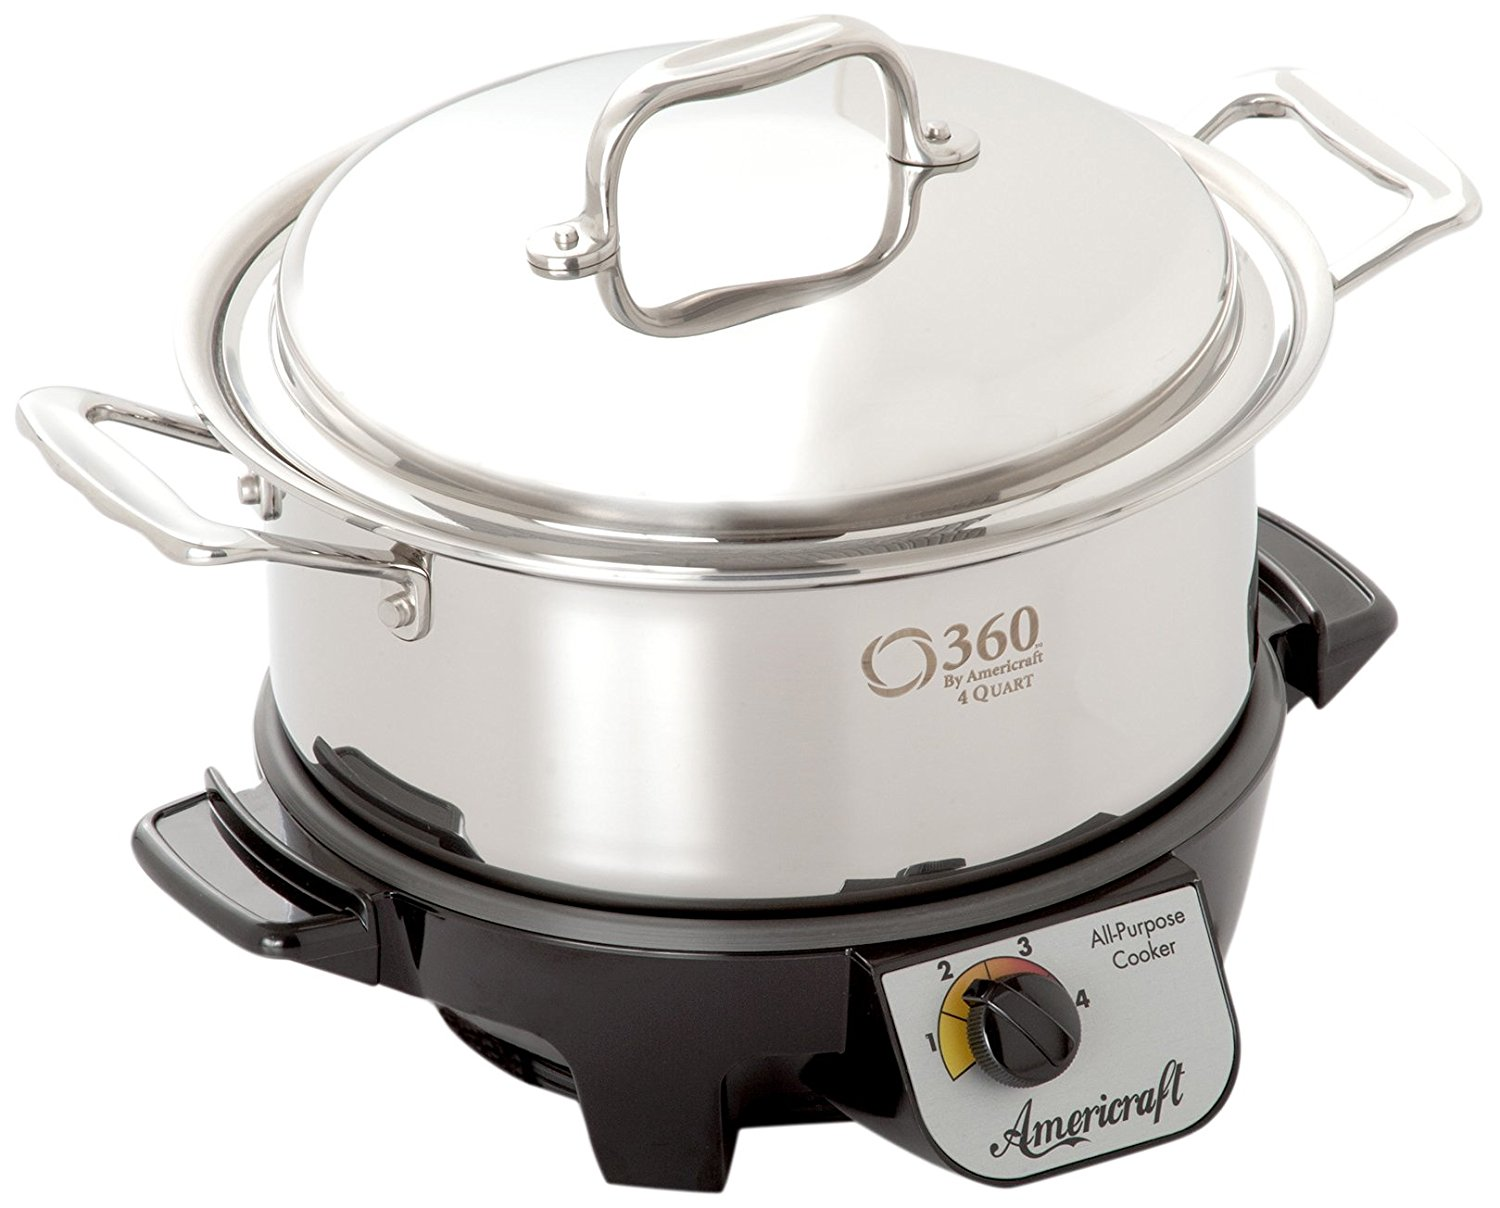 Indulging Ceramic Free Slow Cookers Non Toxic Cooking Reviewed All Clad Slow Cooker 7 Qt All Clad Slow Cooker Browning houzz-03 All Clad Slow Cooker